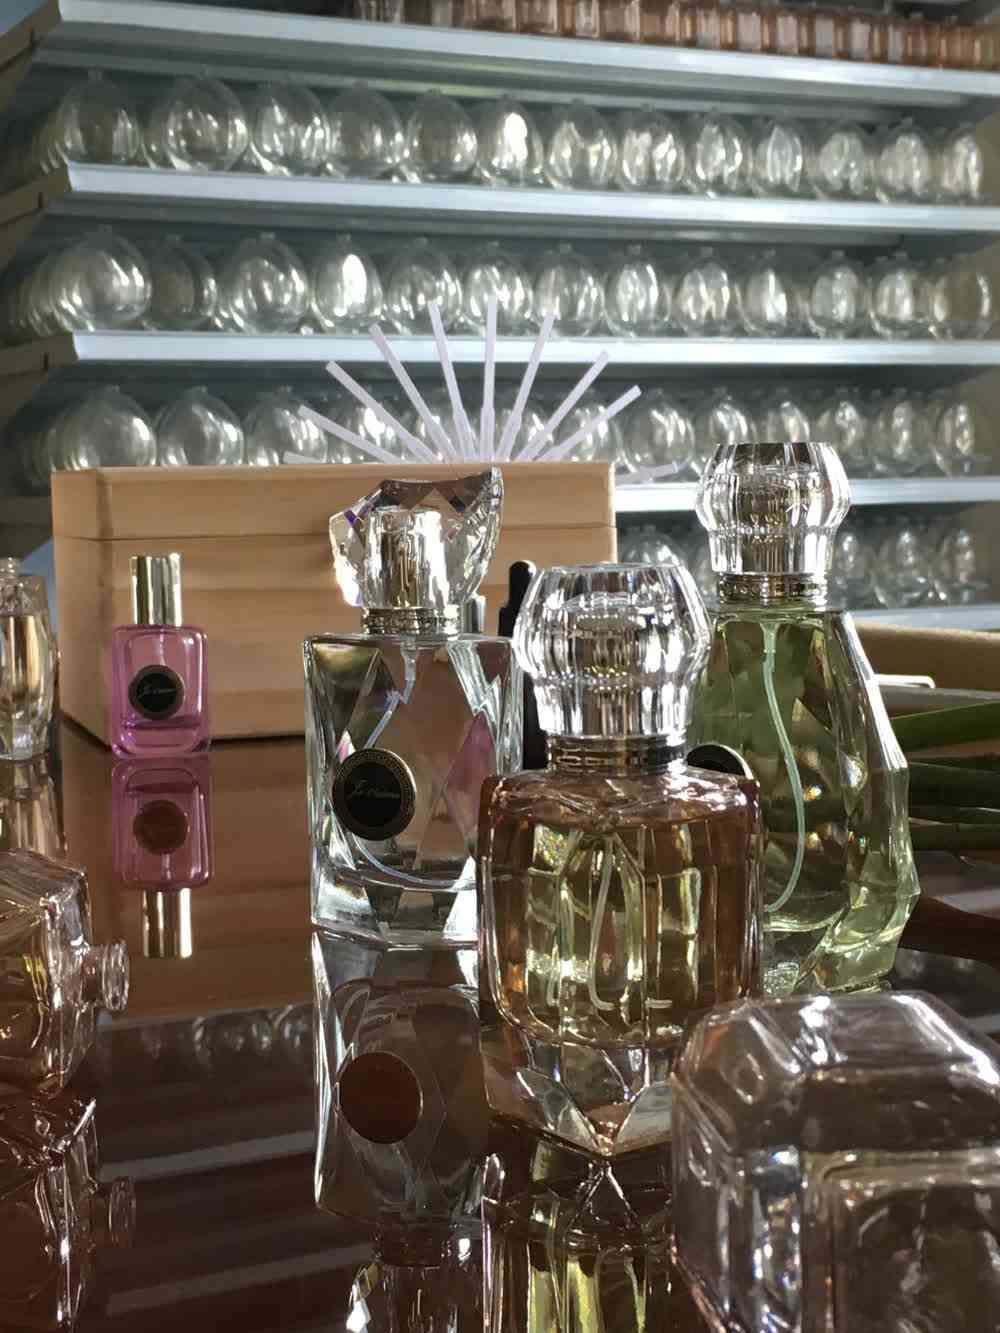 Bespoke Perfume Making workshop : Take home 75ml